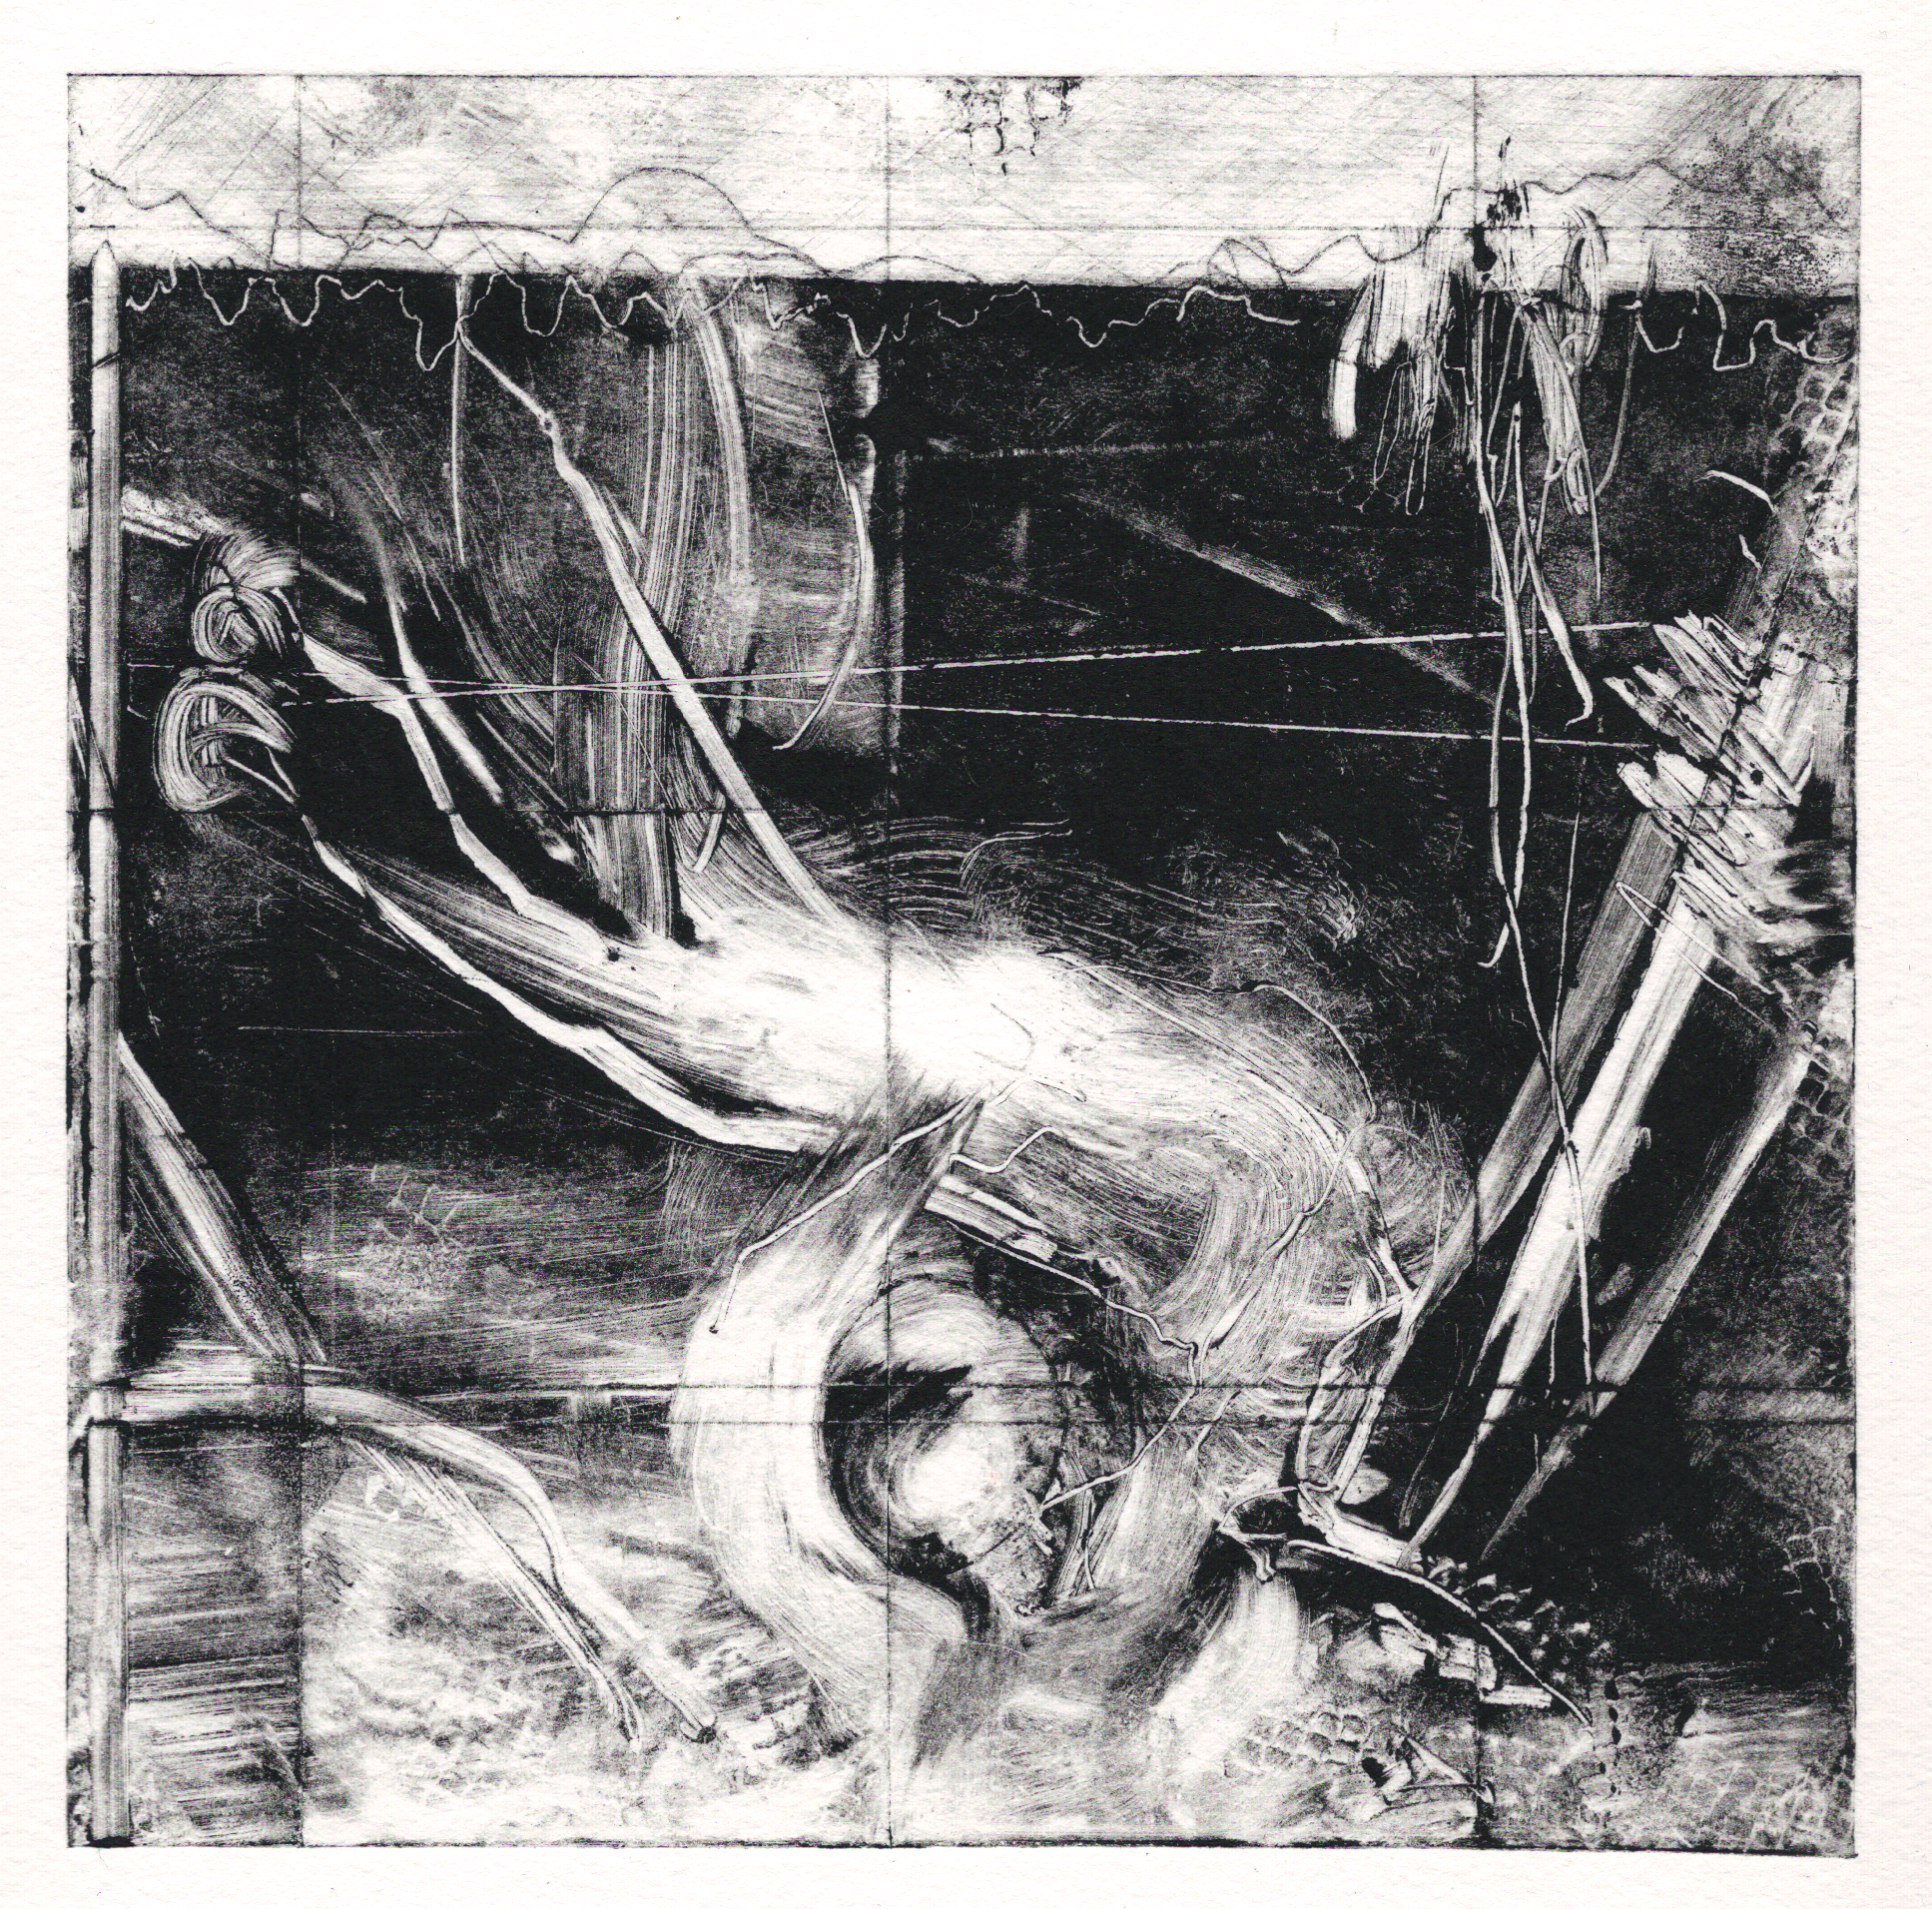 A print, ink on paper, by Clive Knights from his Earth collection